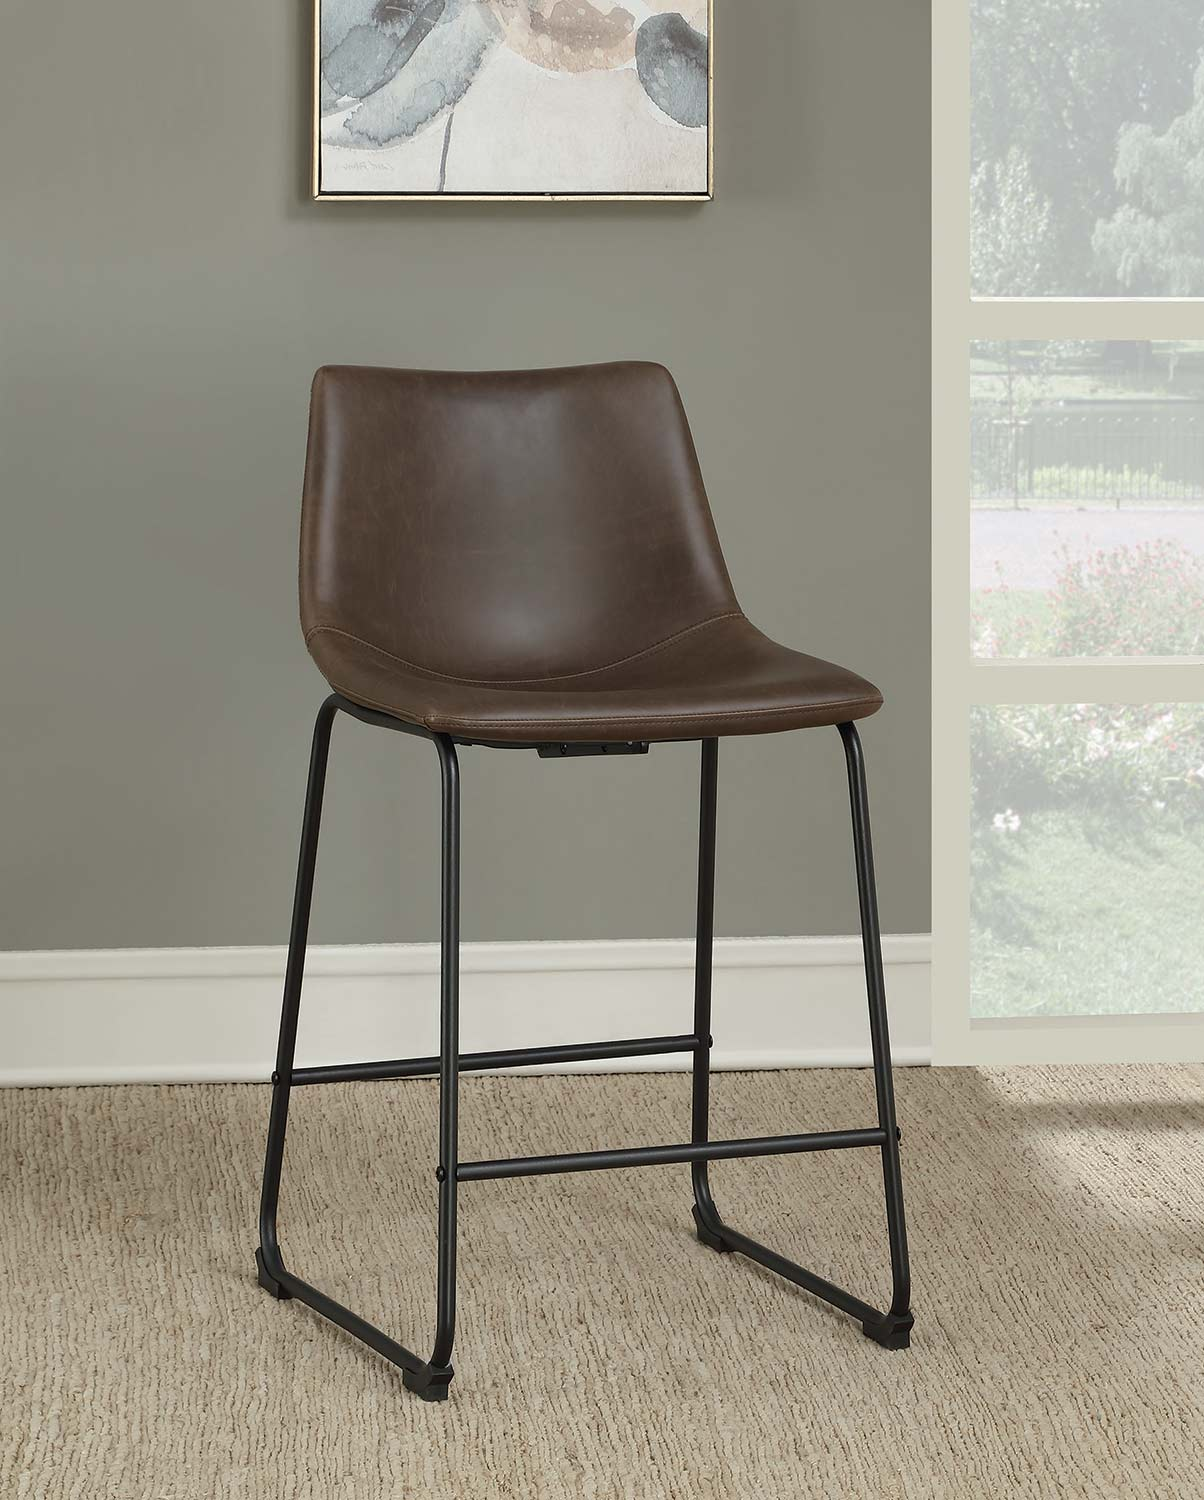 Coaster 102535 Counter Height Stool - Two-Tone Brown Leatherette/Black Legs